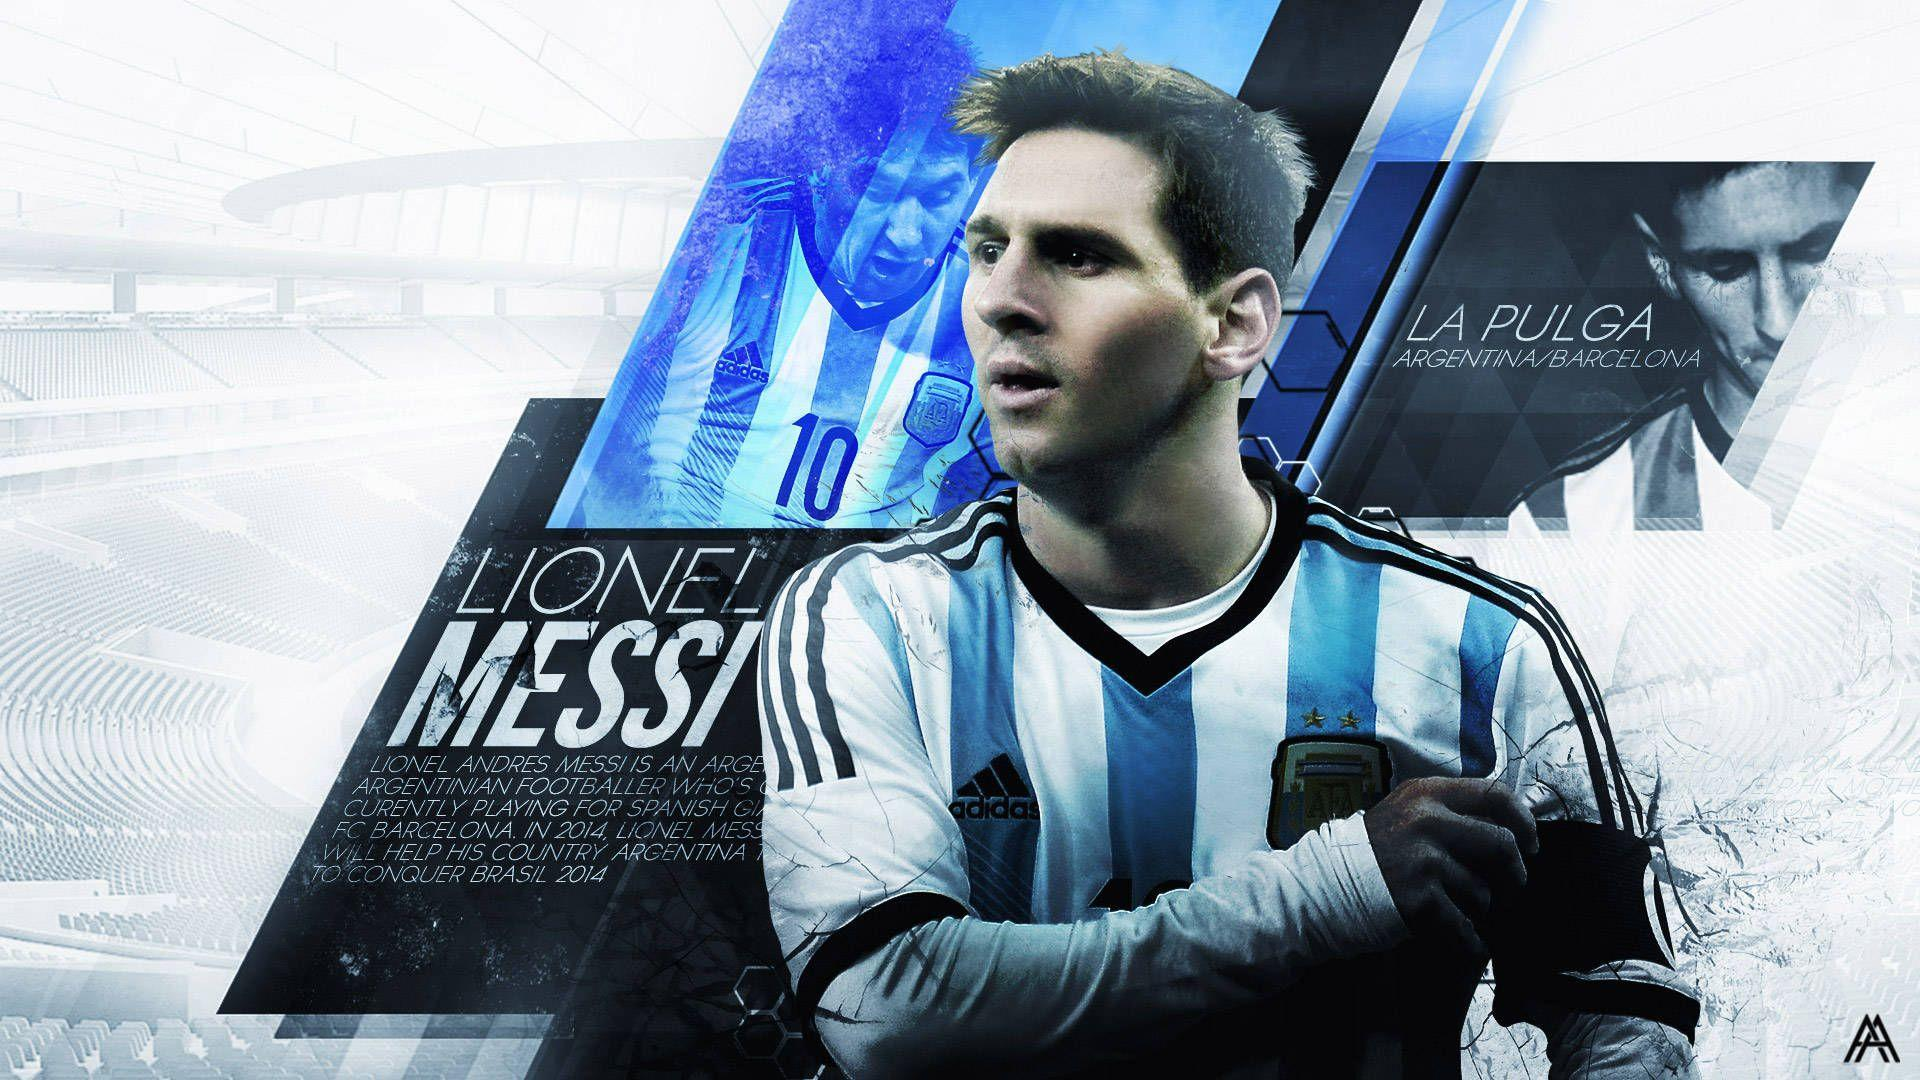 Messi Desktop Background | HD Wallpapers, Backgrounds, Images, Art ...